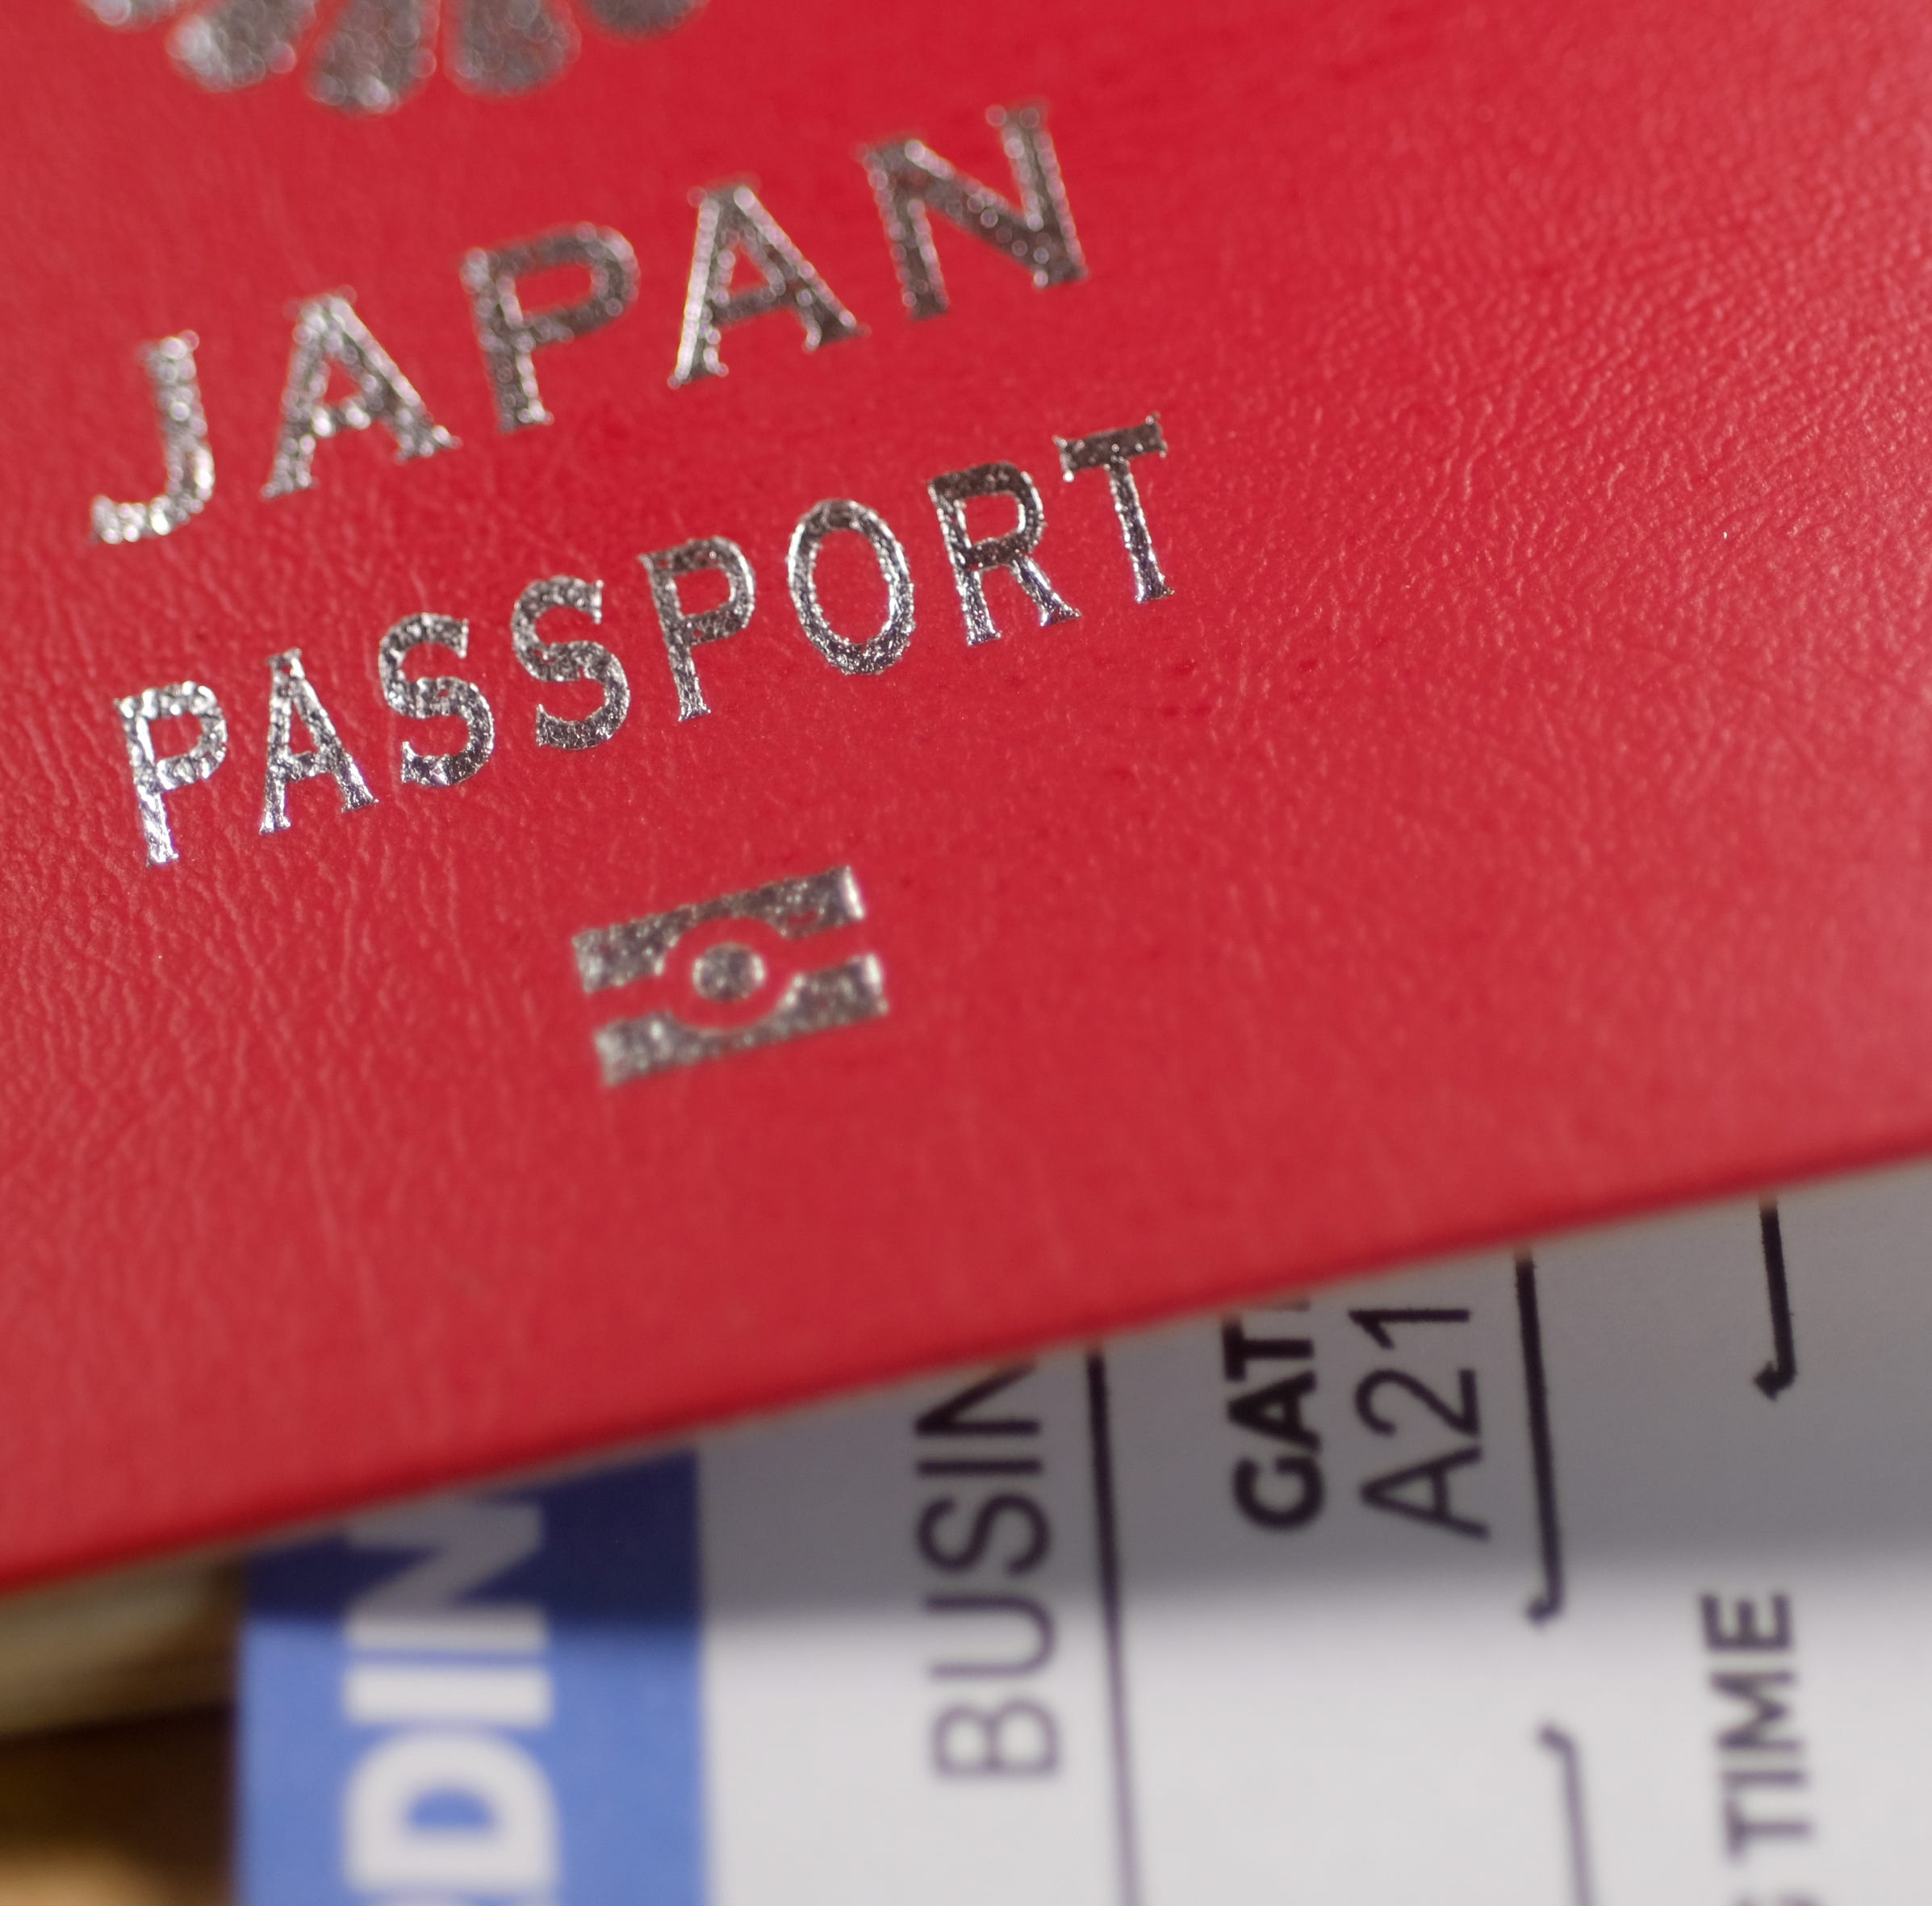 The Japan passport recently claimed the top spot on the Henley Passport Index, enjoying visa-free or visa-on-arrival access to 190 destinations.